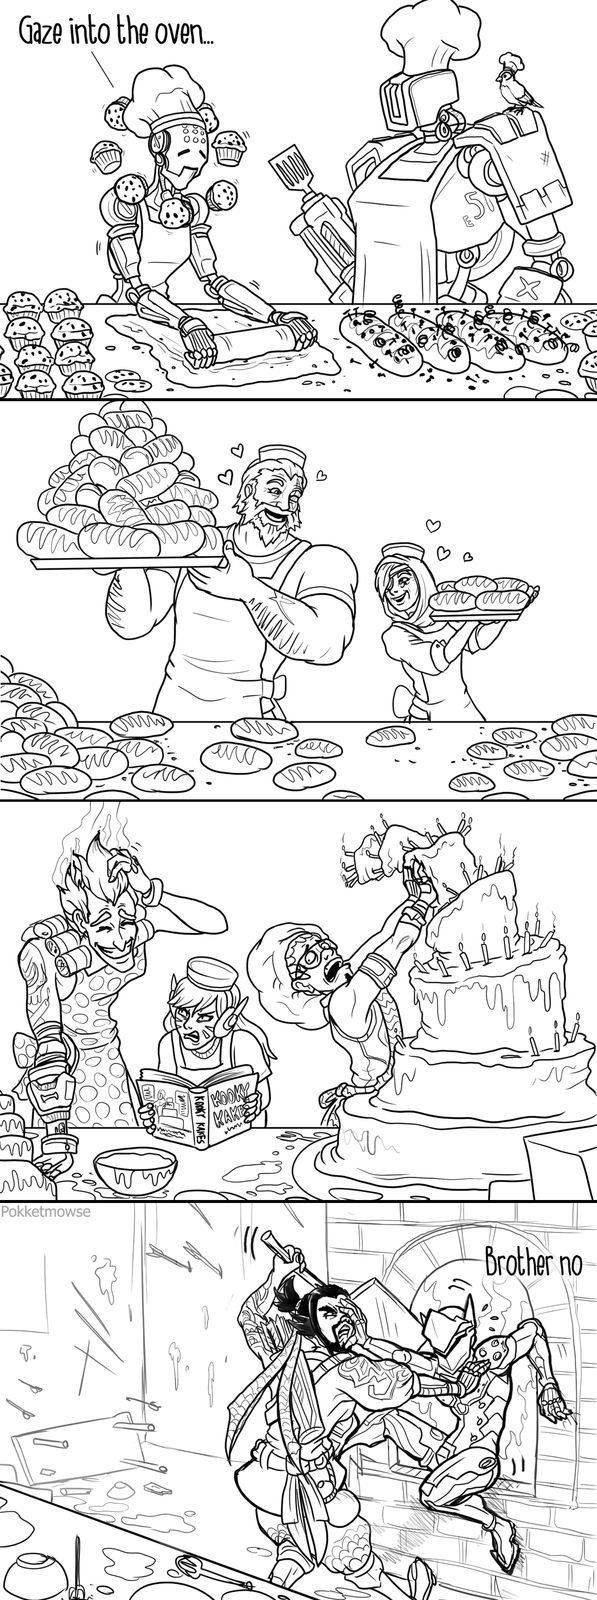 Baking with the Overwatch Crew